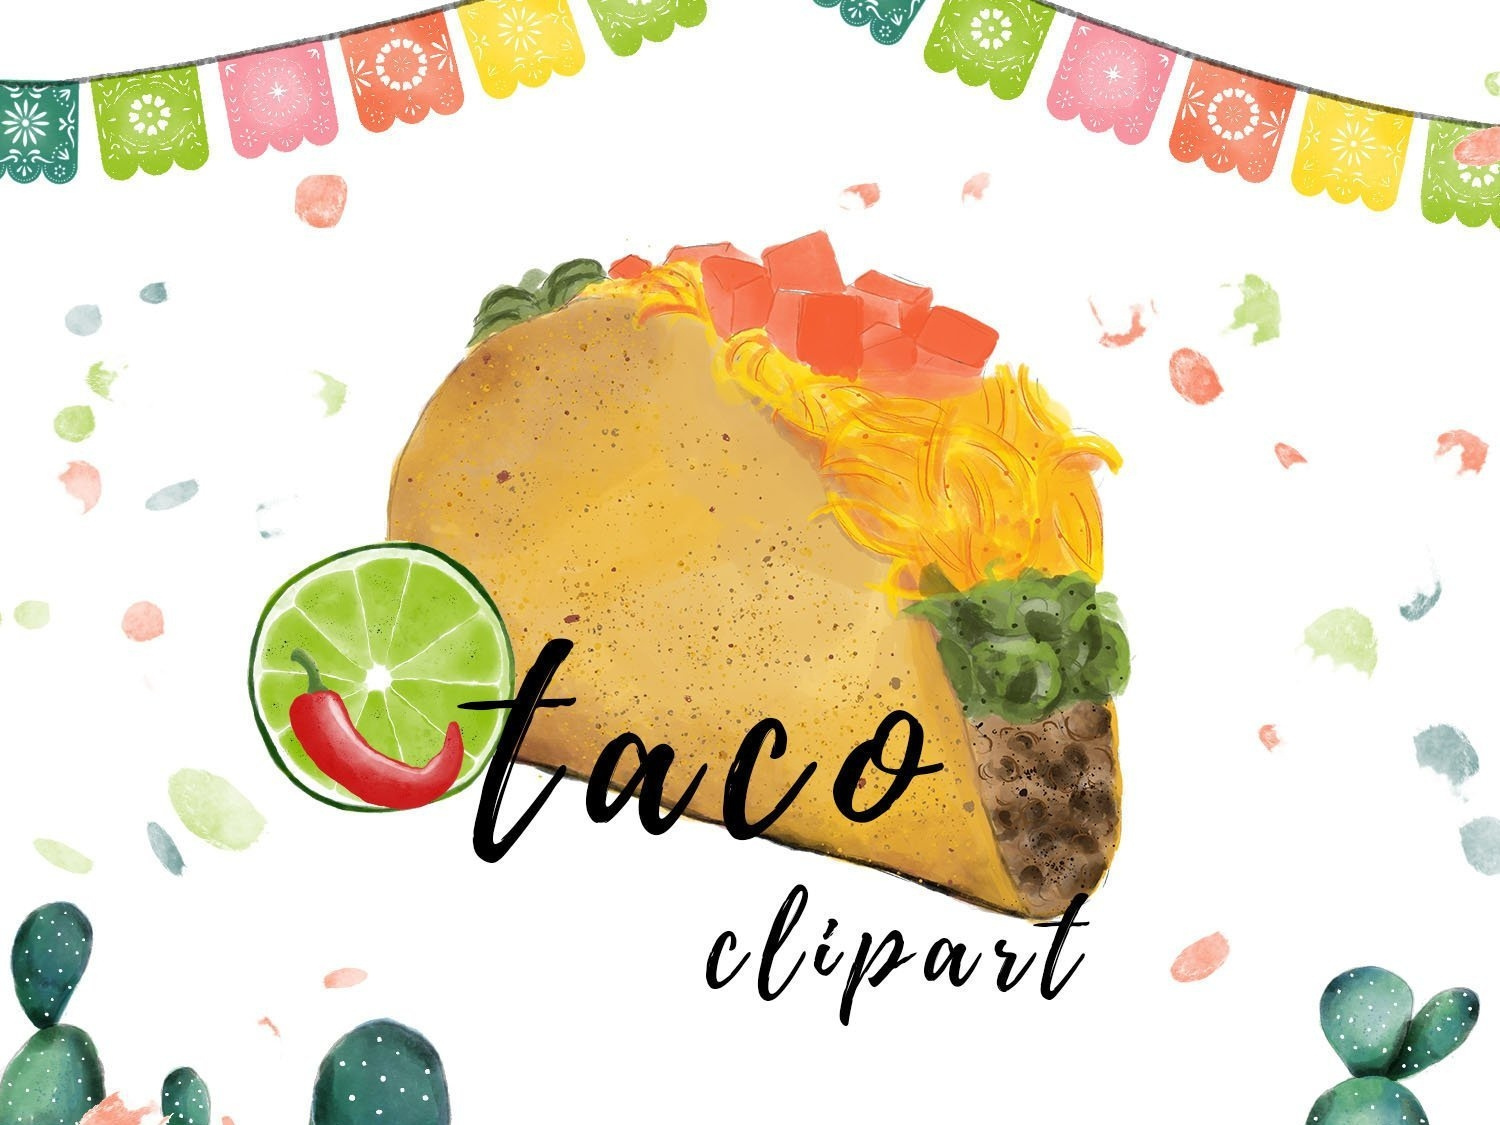 Watercolor Taco Clipart Mexican PNG by turnip on Dribbble.